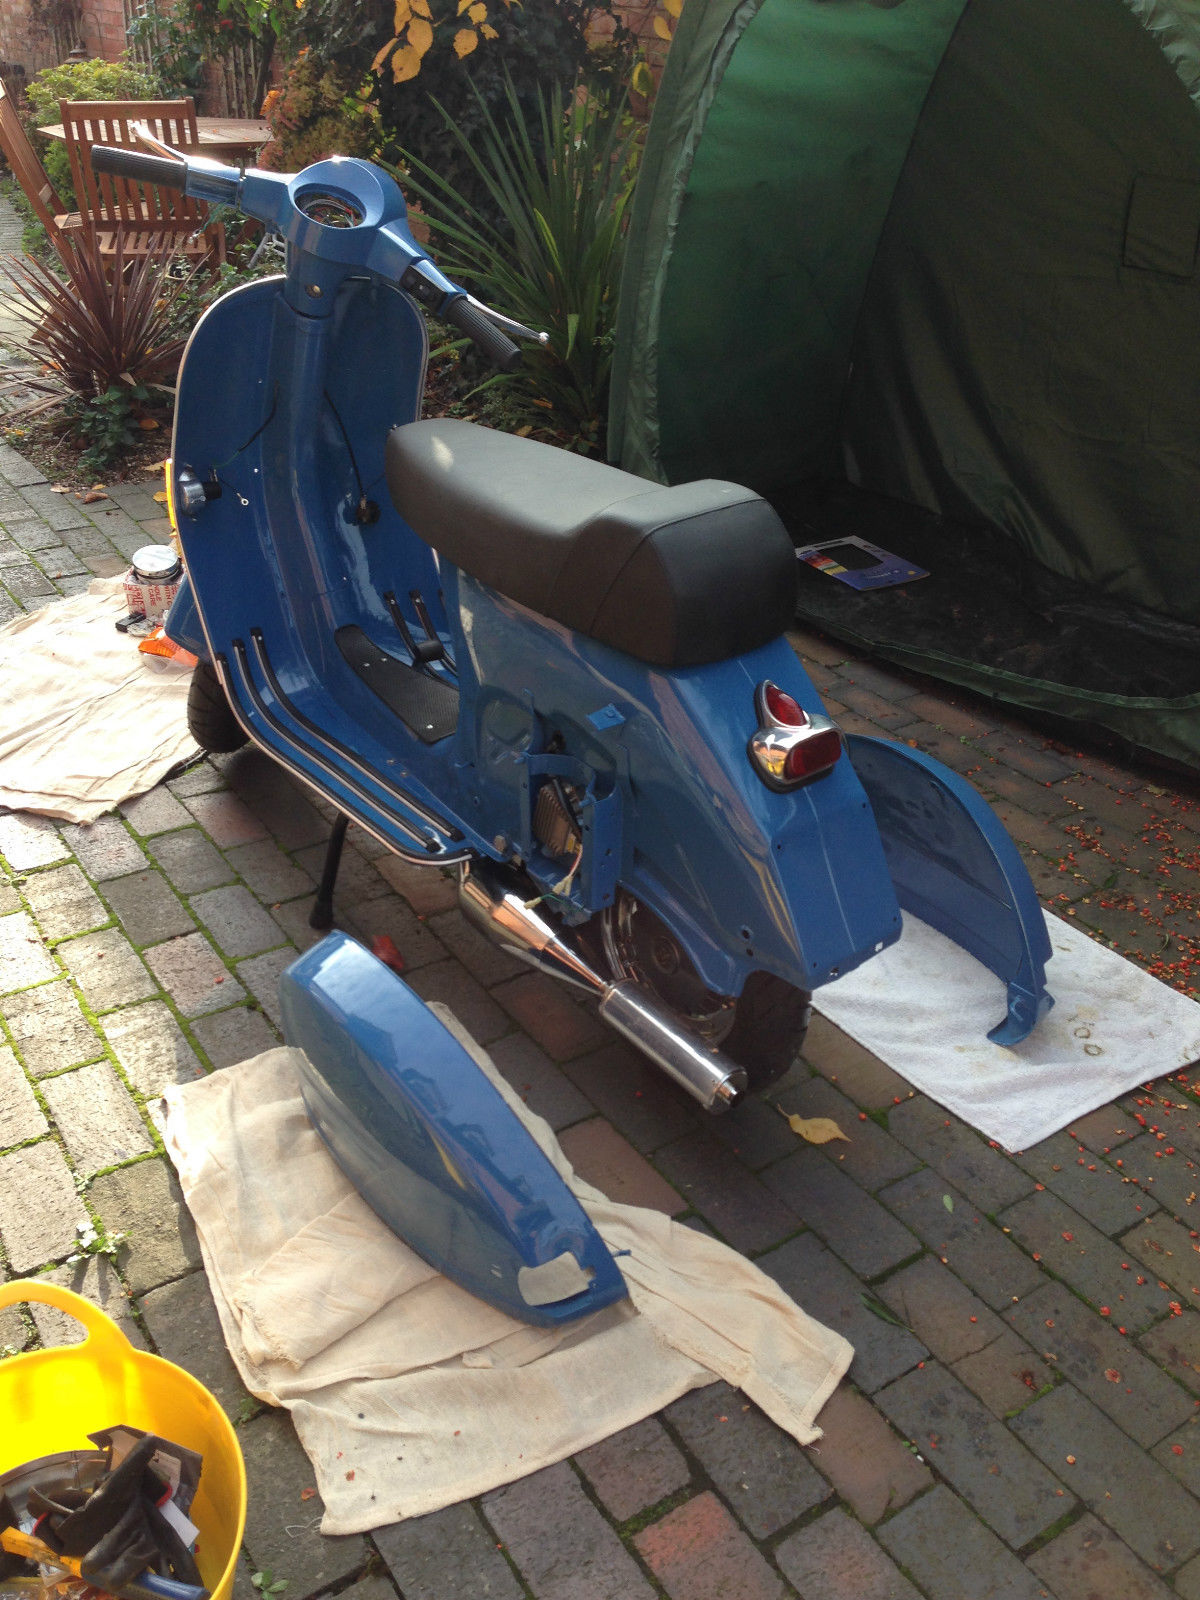 vespa px 125 restored project 99 percent finished reluctant sale 30 yrs old